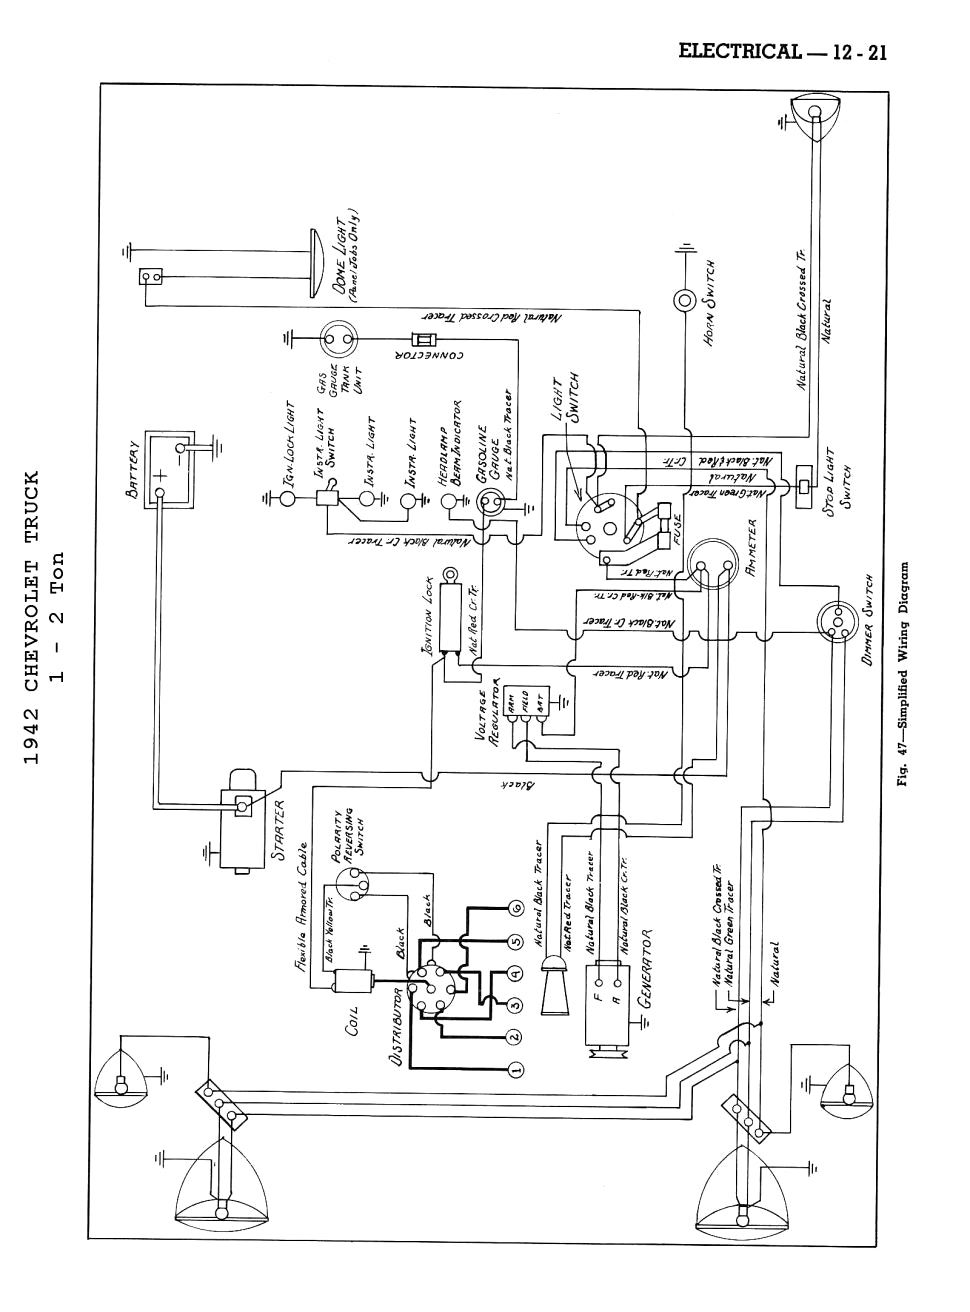 coleman furnace blower wiring diagram get coleman mach thermostat wiring diagram sample coleman furnace thermostat wiring diagram